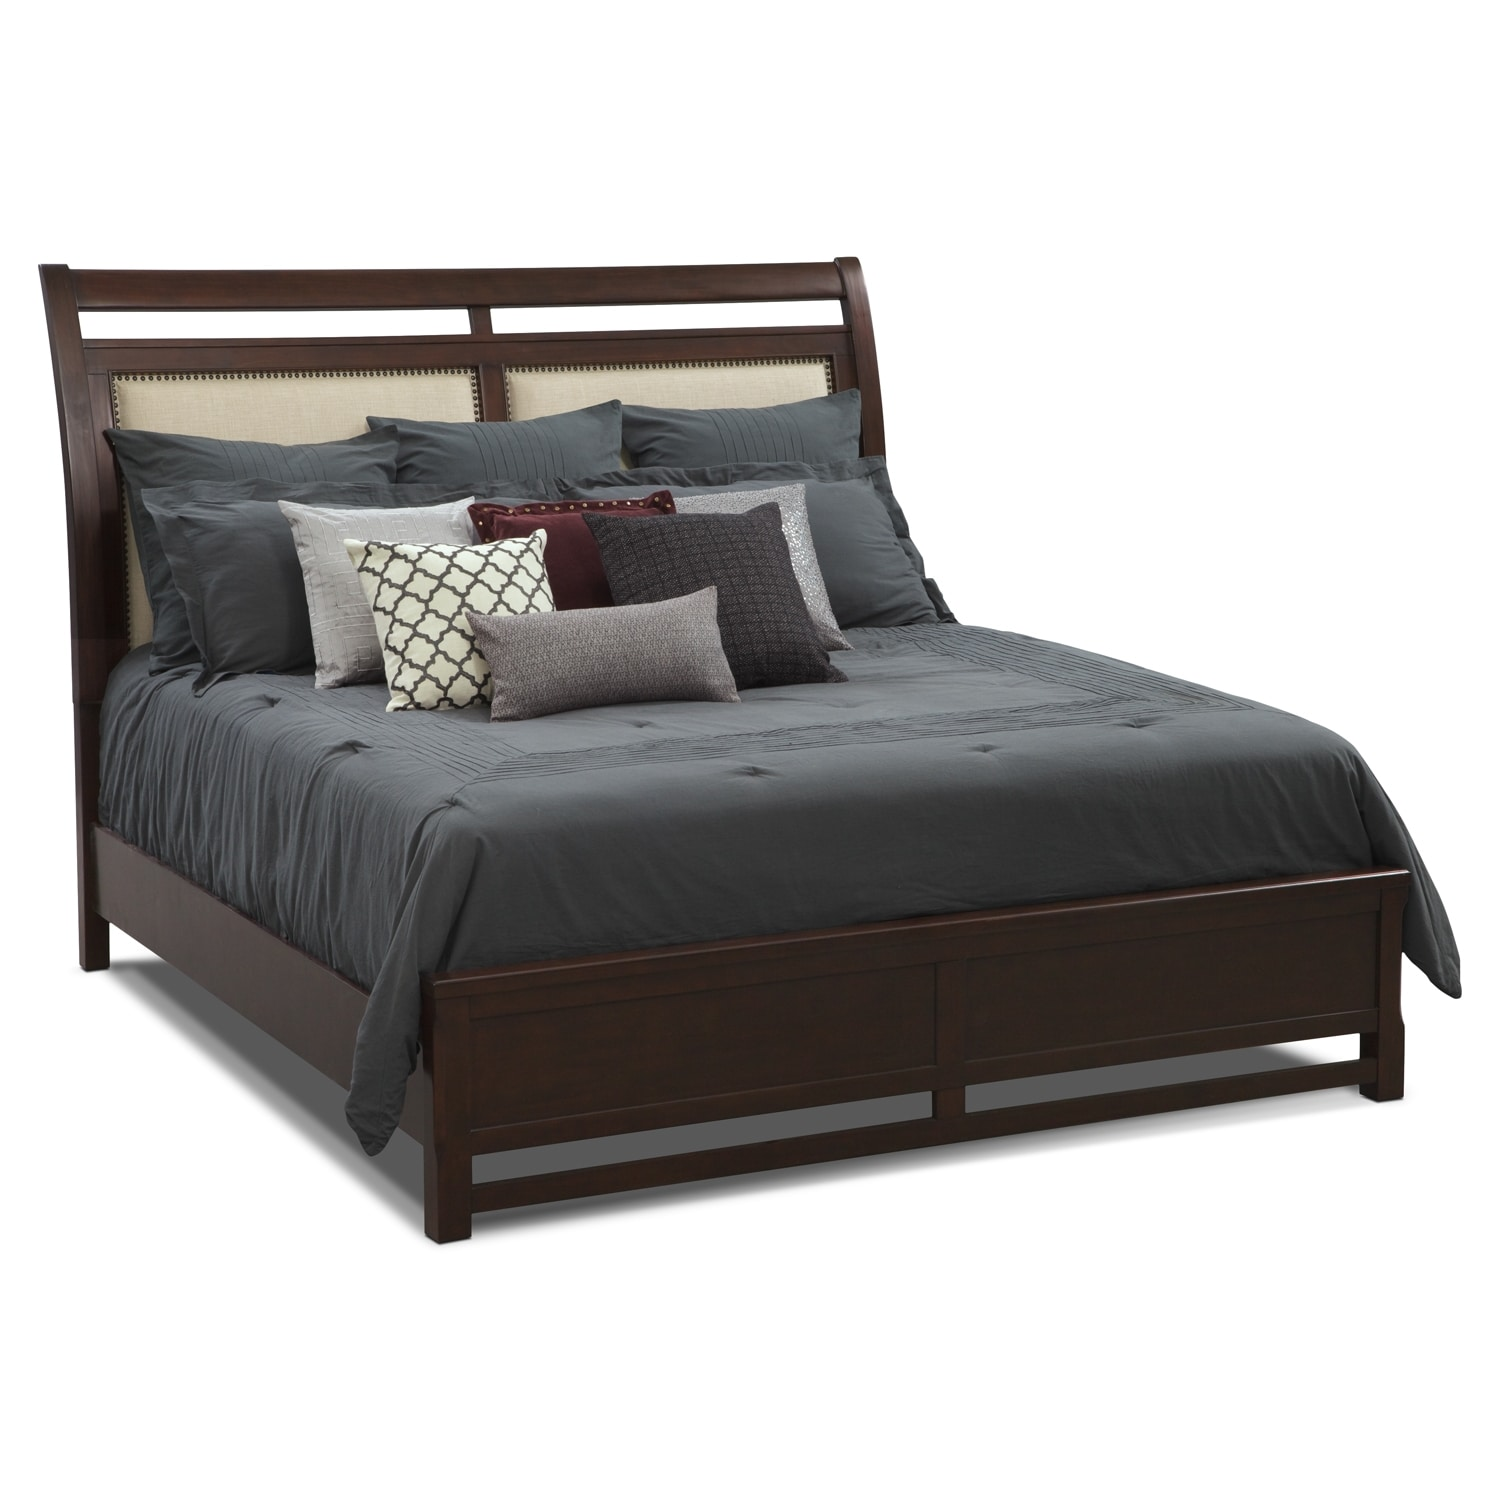 Accent and Occasional Furniture - Midnite in Monroe III Queen Bedding Set